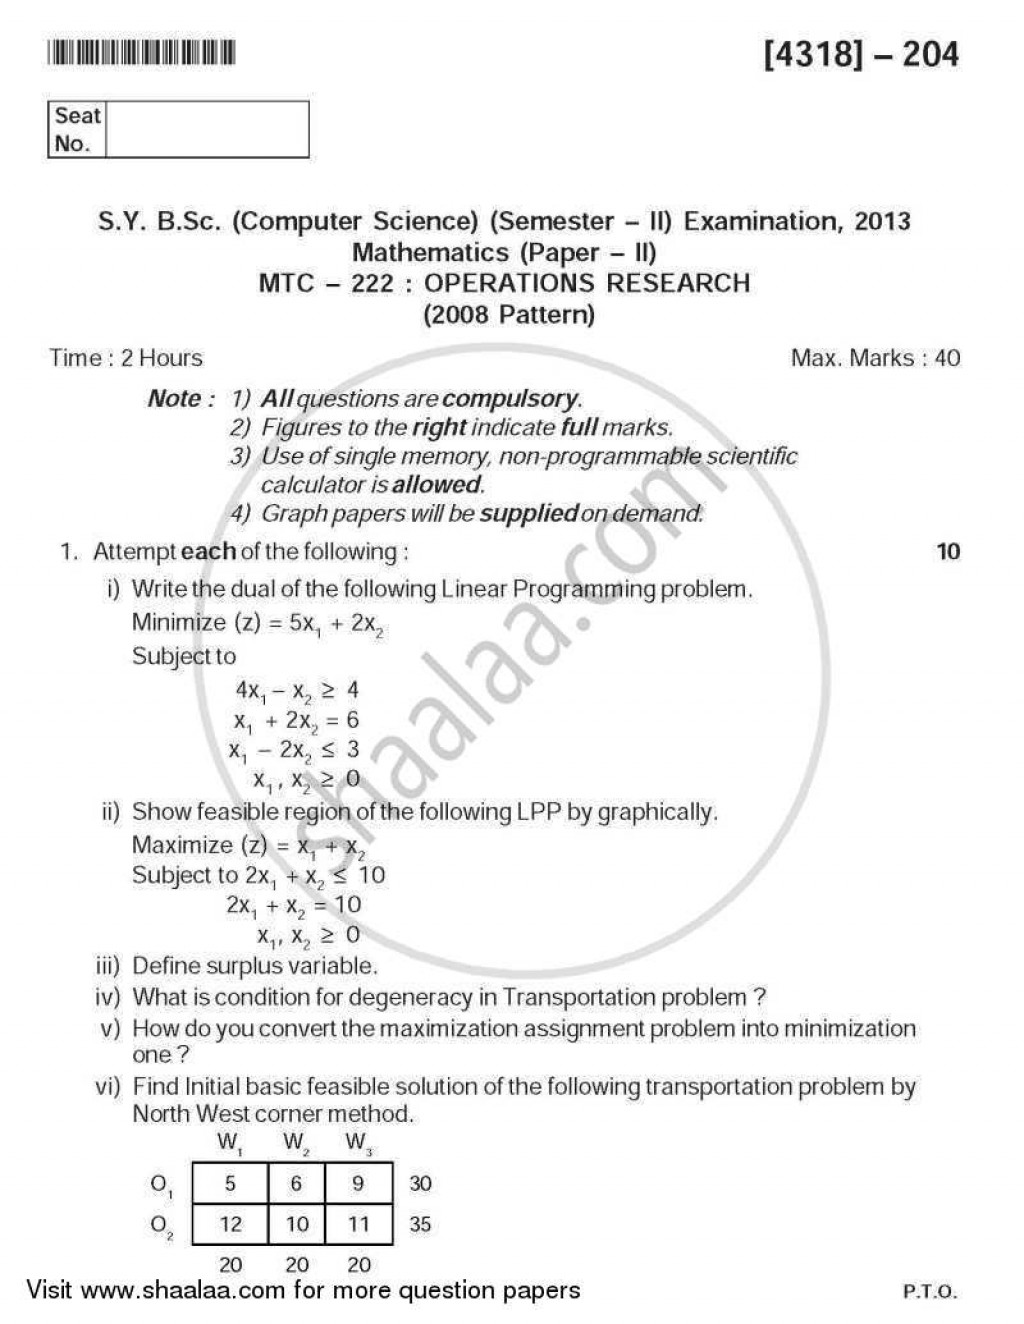 005 Computer Scienceh Papers Download University Of Pune Bachelor Bsc Operations Sybsc Mathematics Semester 2014 202a0006c3dde448887d1ae477c436d86 Fascinating Science Research Pdf Free Ieee Large